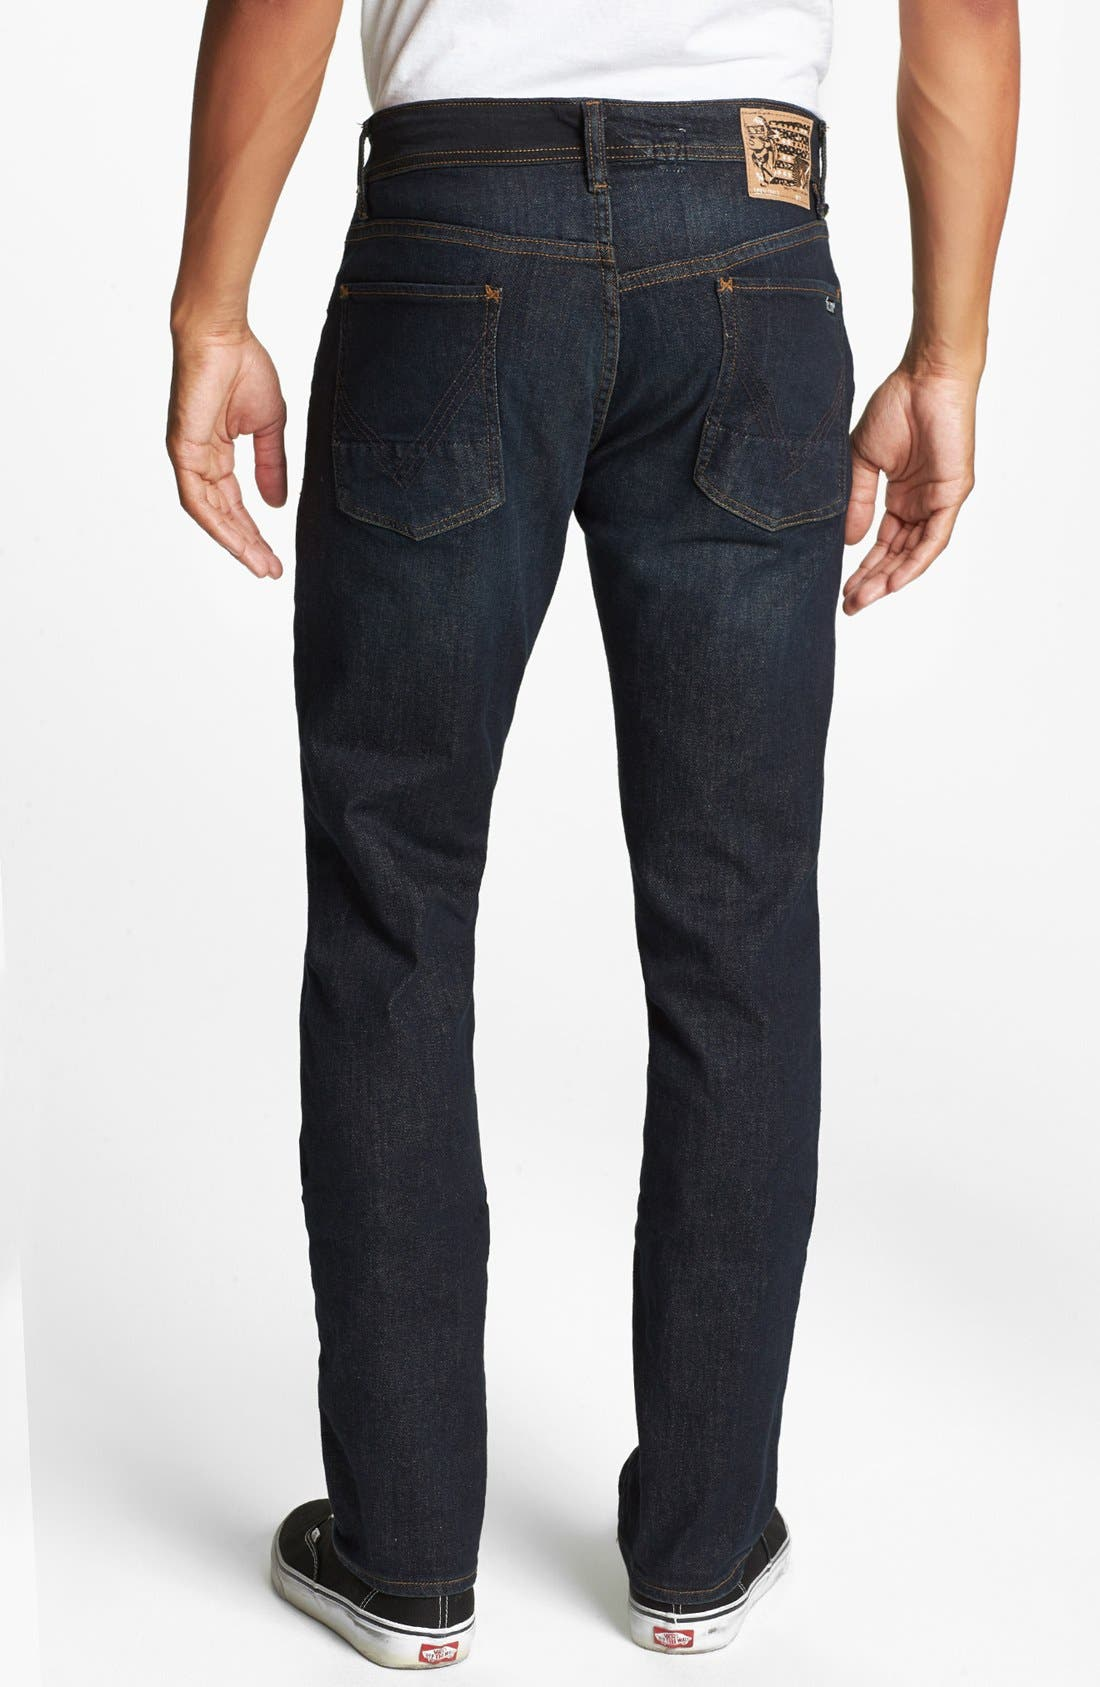 Alternate Image 1 Selected - Volcom 'Vorta' Slim Straight Leg Jeans (Dark Blue Rinse)